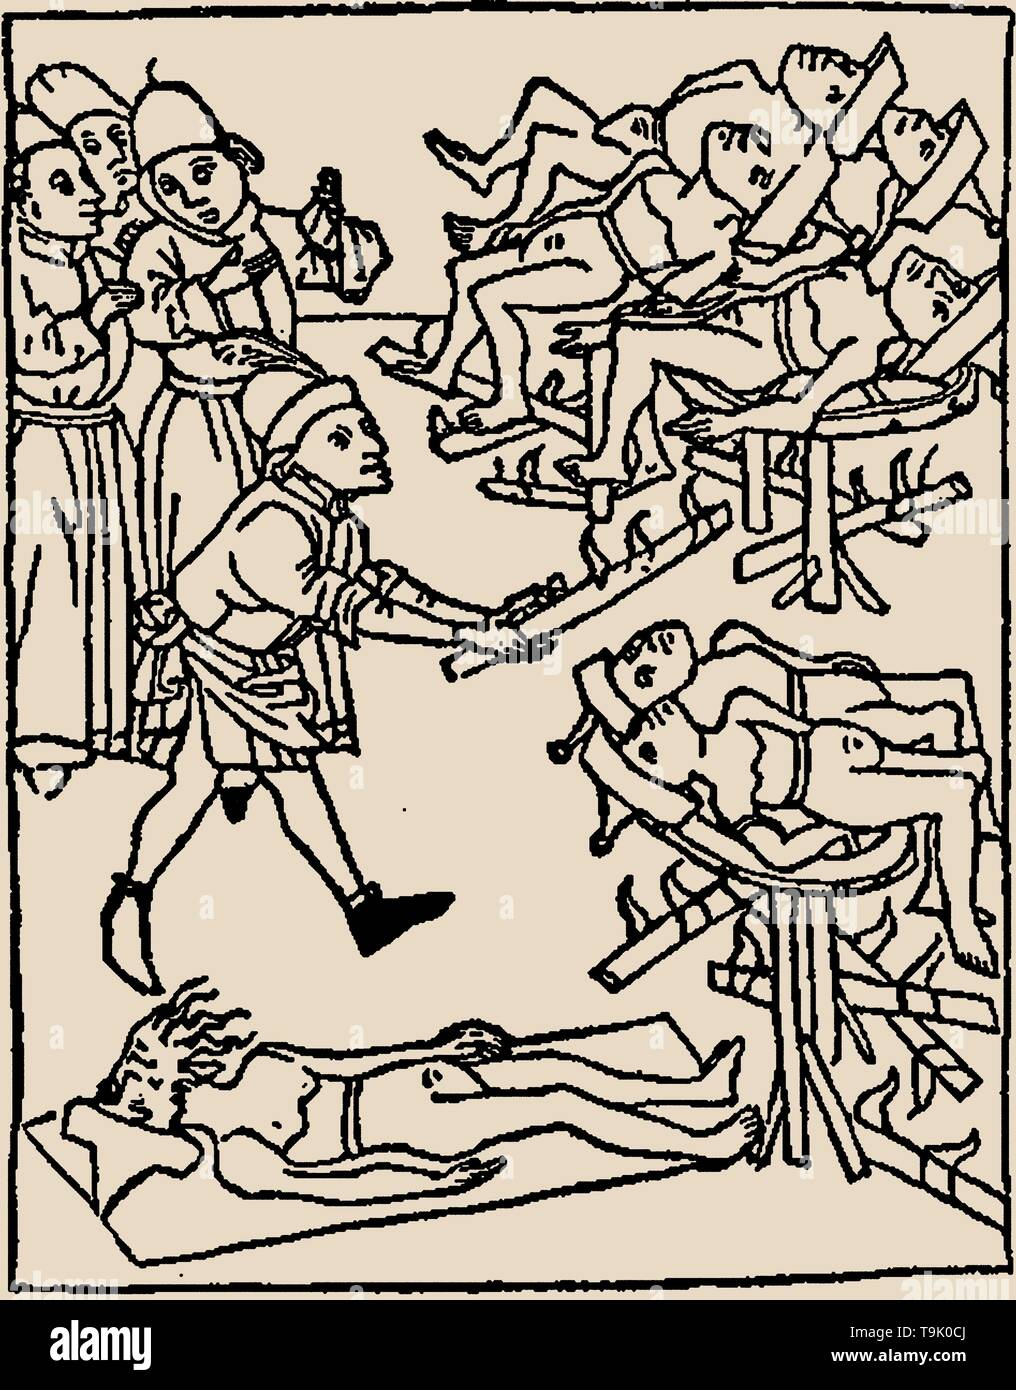 Well poisoning: Torture of the Jews. Museum: PRIVATE COLLECTION. Author: ANONYMOUS. - Stock Image